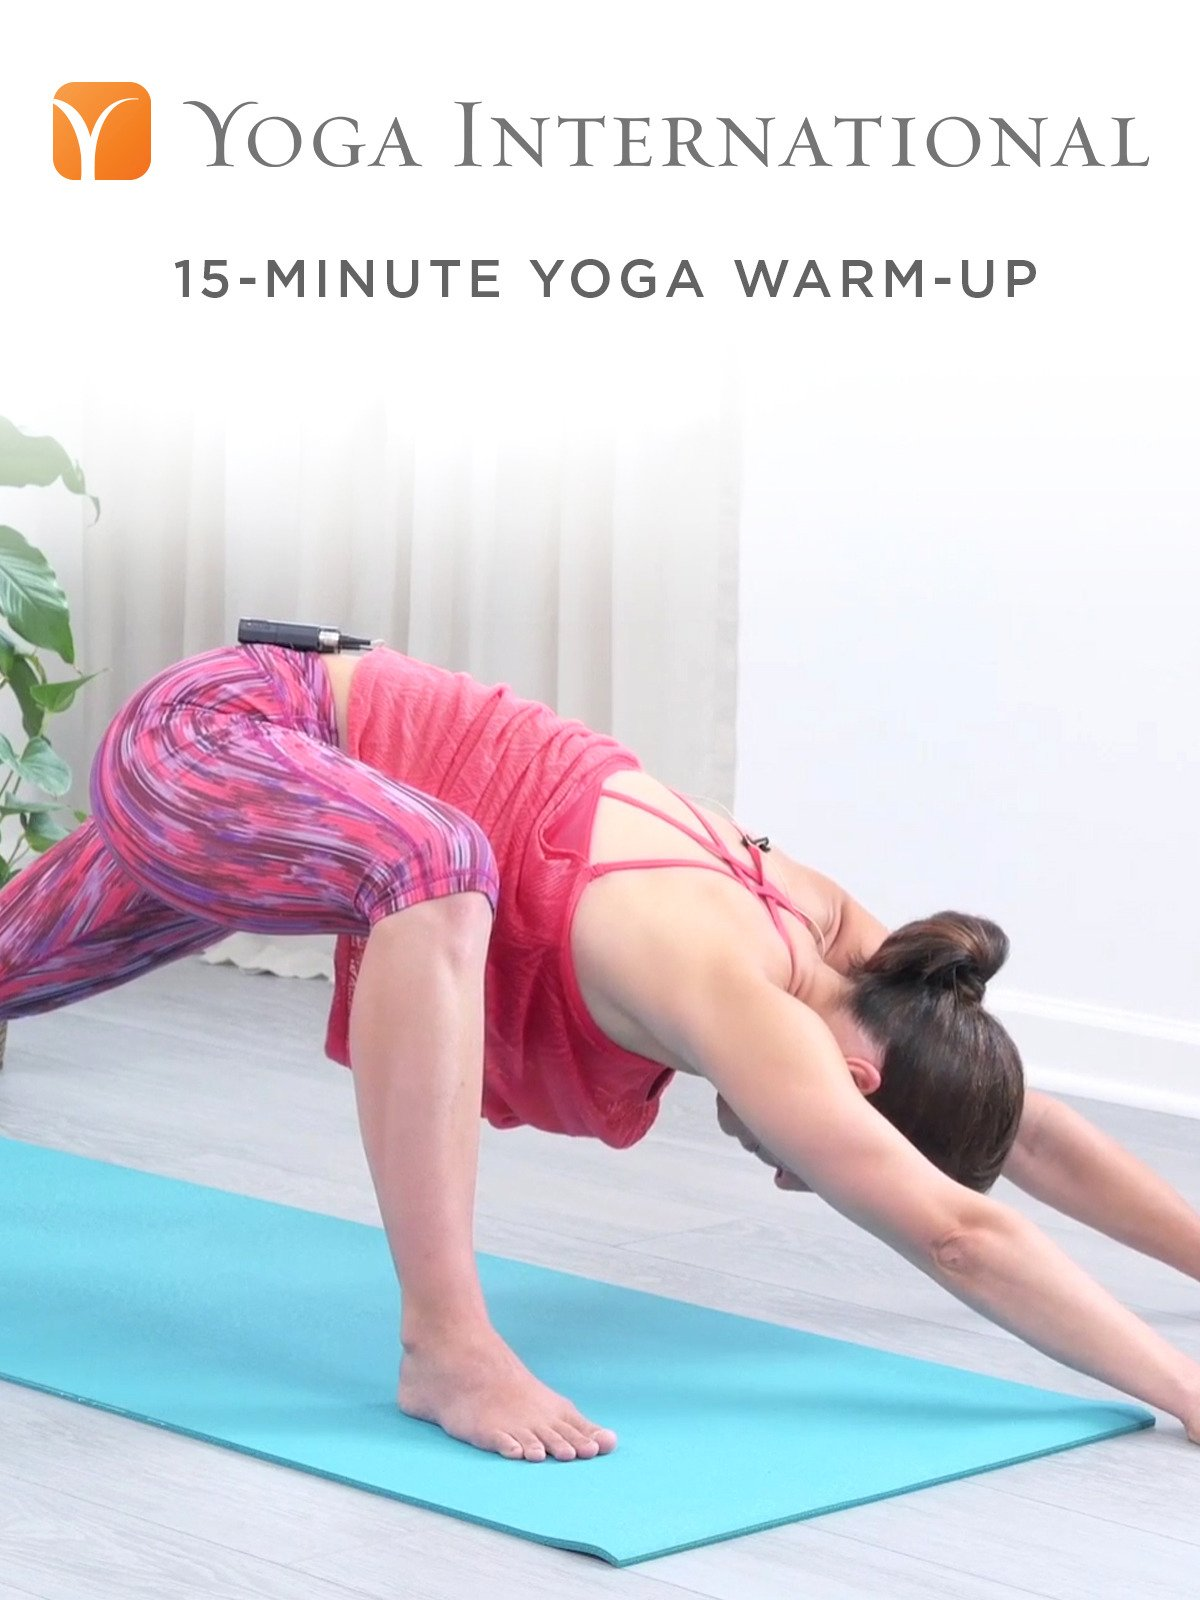 15-Minute Yoga Warm-Up